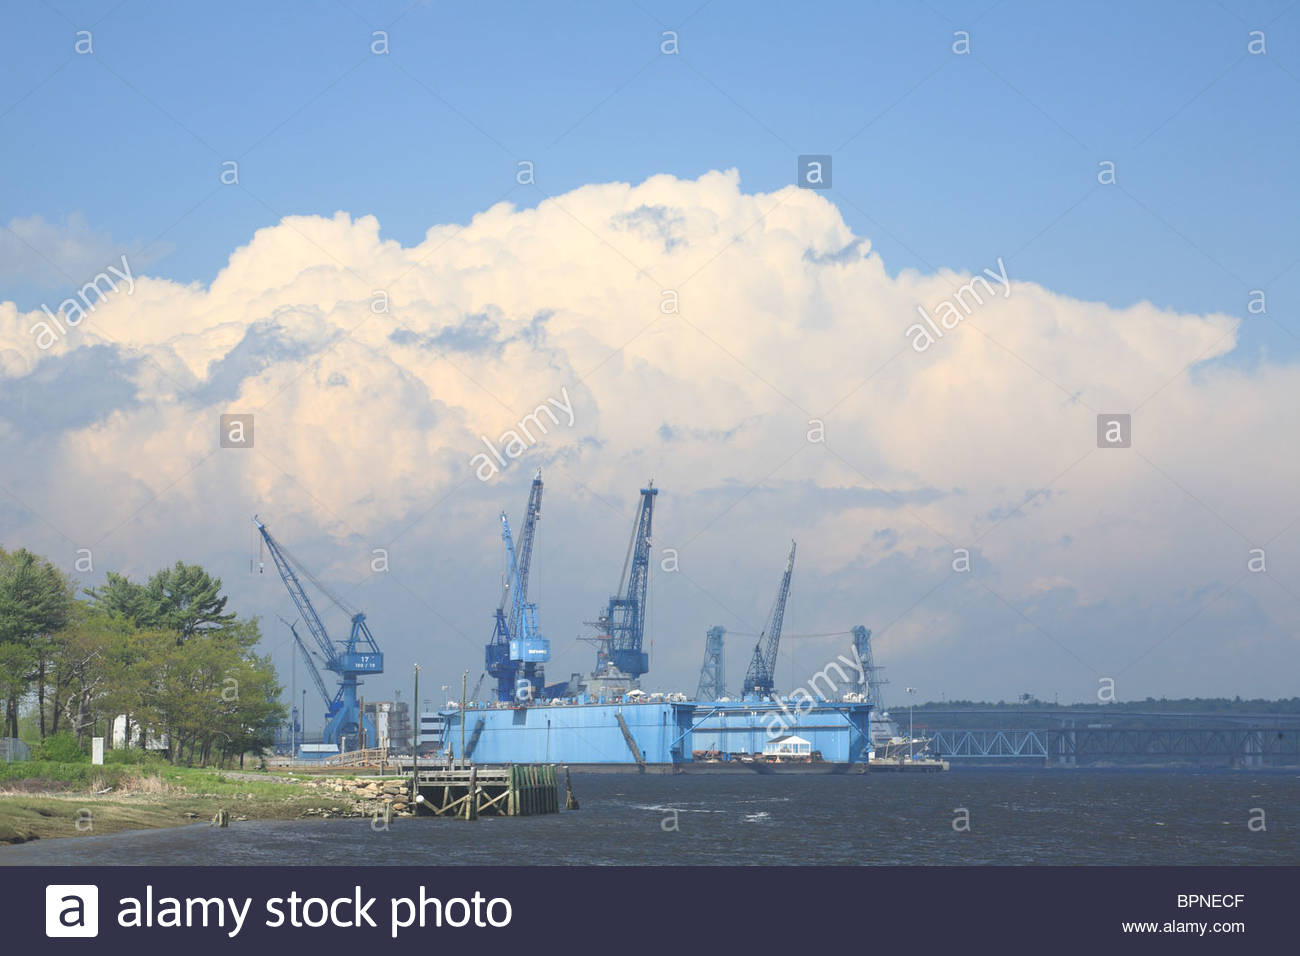 View of Bath Iron Works, a shipbuilding company on the Kennebec River in Bath, Maine, USA. Stock Photo